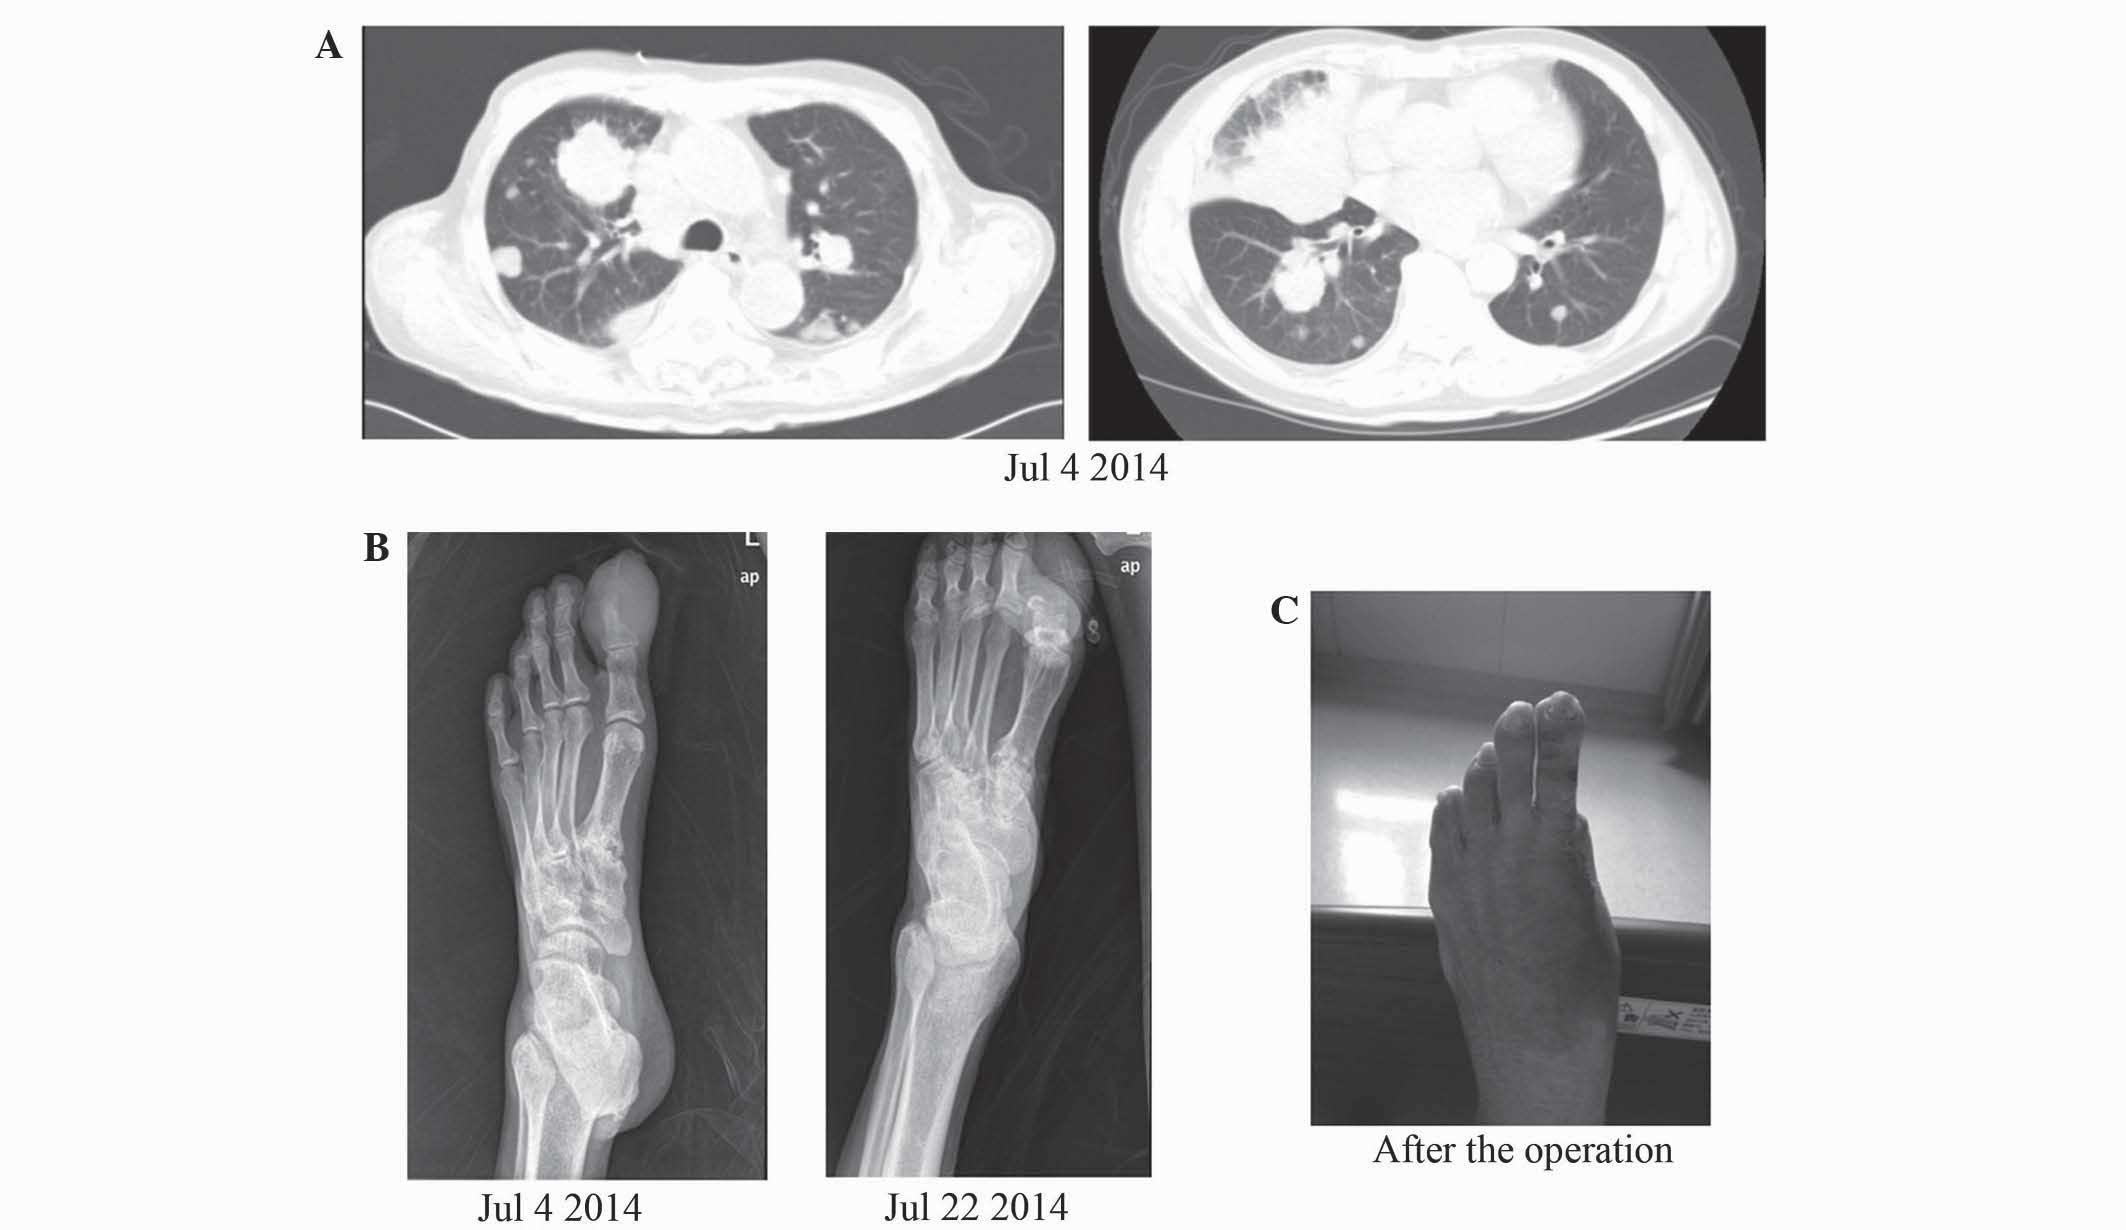 Chinese herbal treatments for prostate cancer metastisis to -  B X Rays Revealing The Gradually Developing Morphological Changes Of The Phalanx Of The Left Hallux C The Patient S Foot Subsequent To Amputation